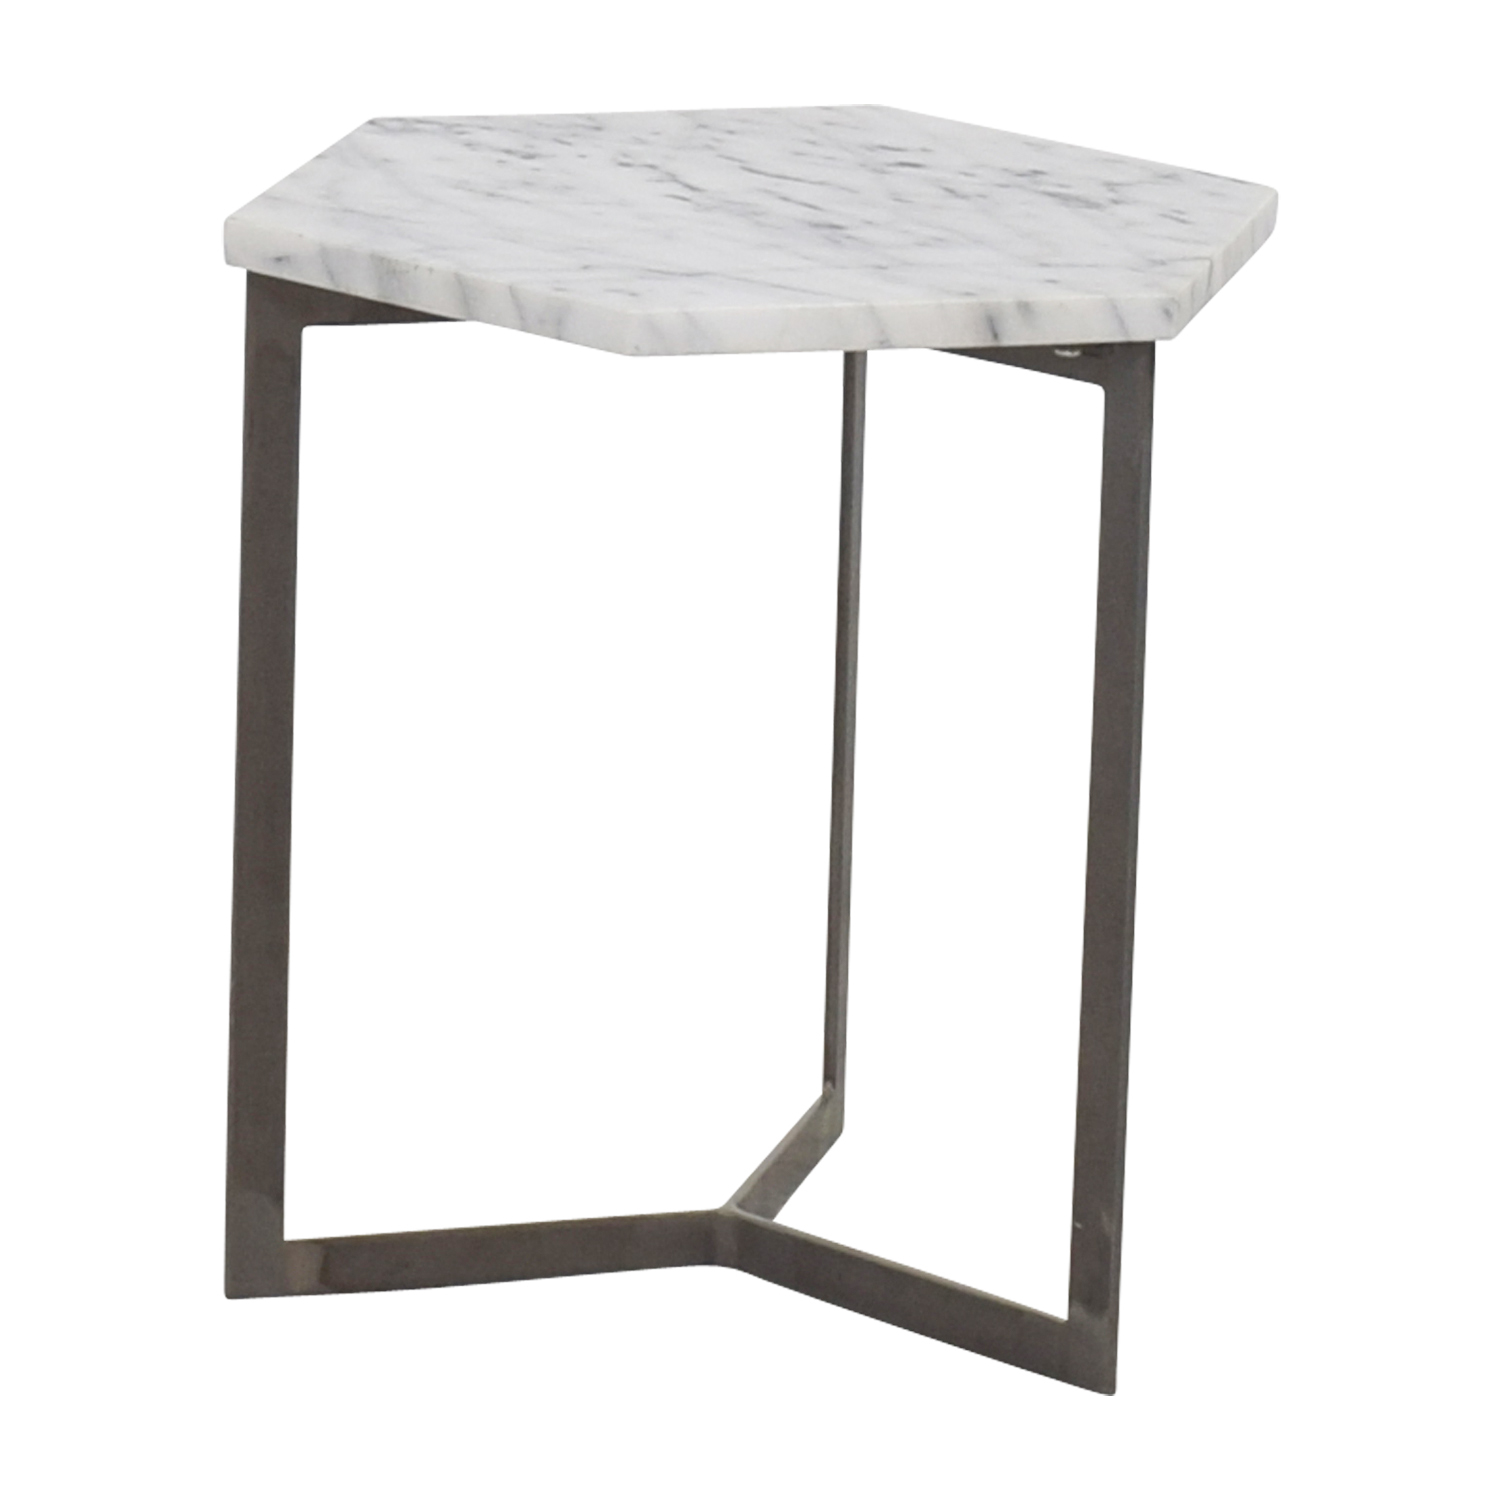 Buy Side Table 50 Off Marble Hexagonal Side Table Tables